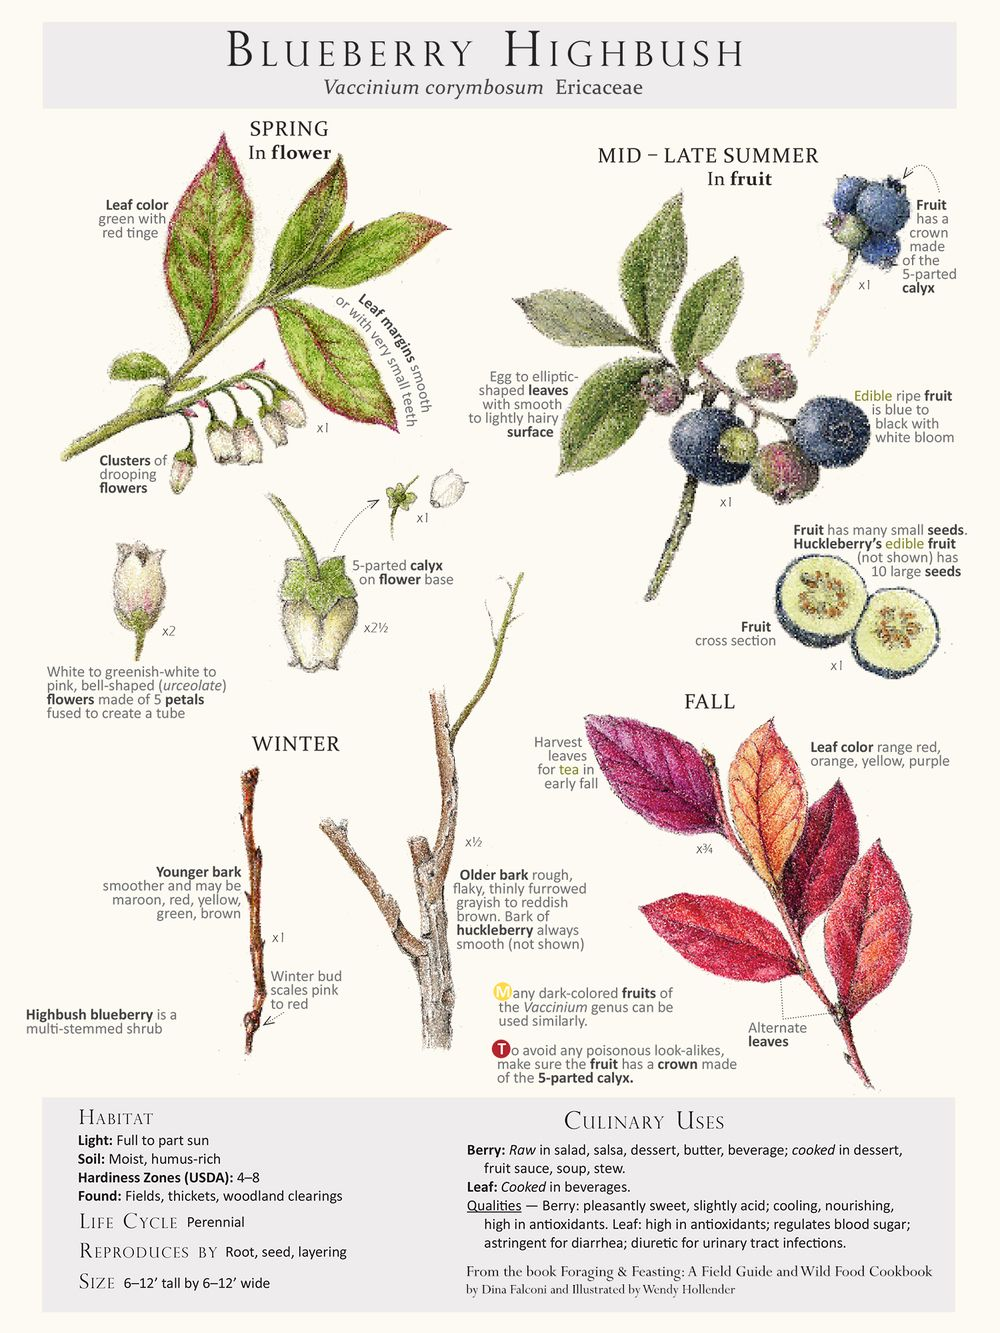 Foraging & Feasting Limited Edition Print - Blueberry